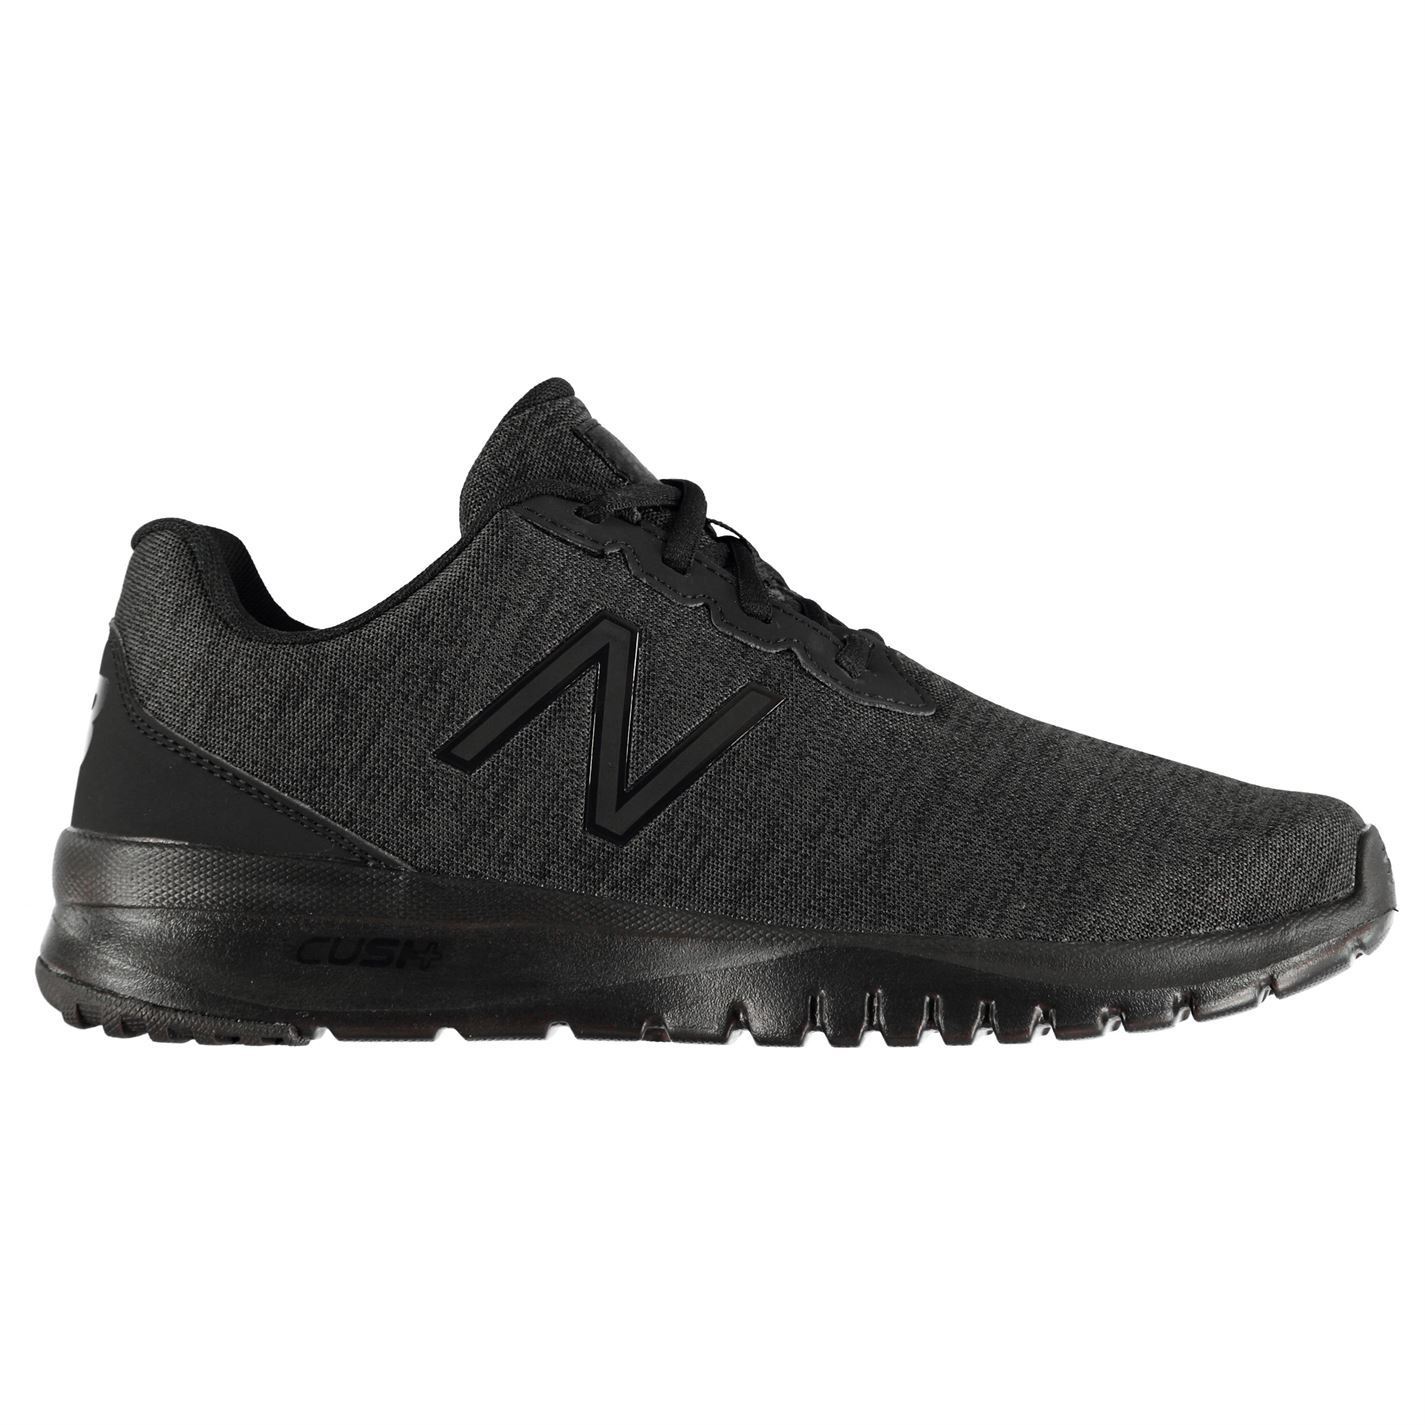 New Balance Cush Plus Sneakers  Uomo Laces Gents Sport Activity Schuhes Laces Uomo Fastened cc951e